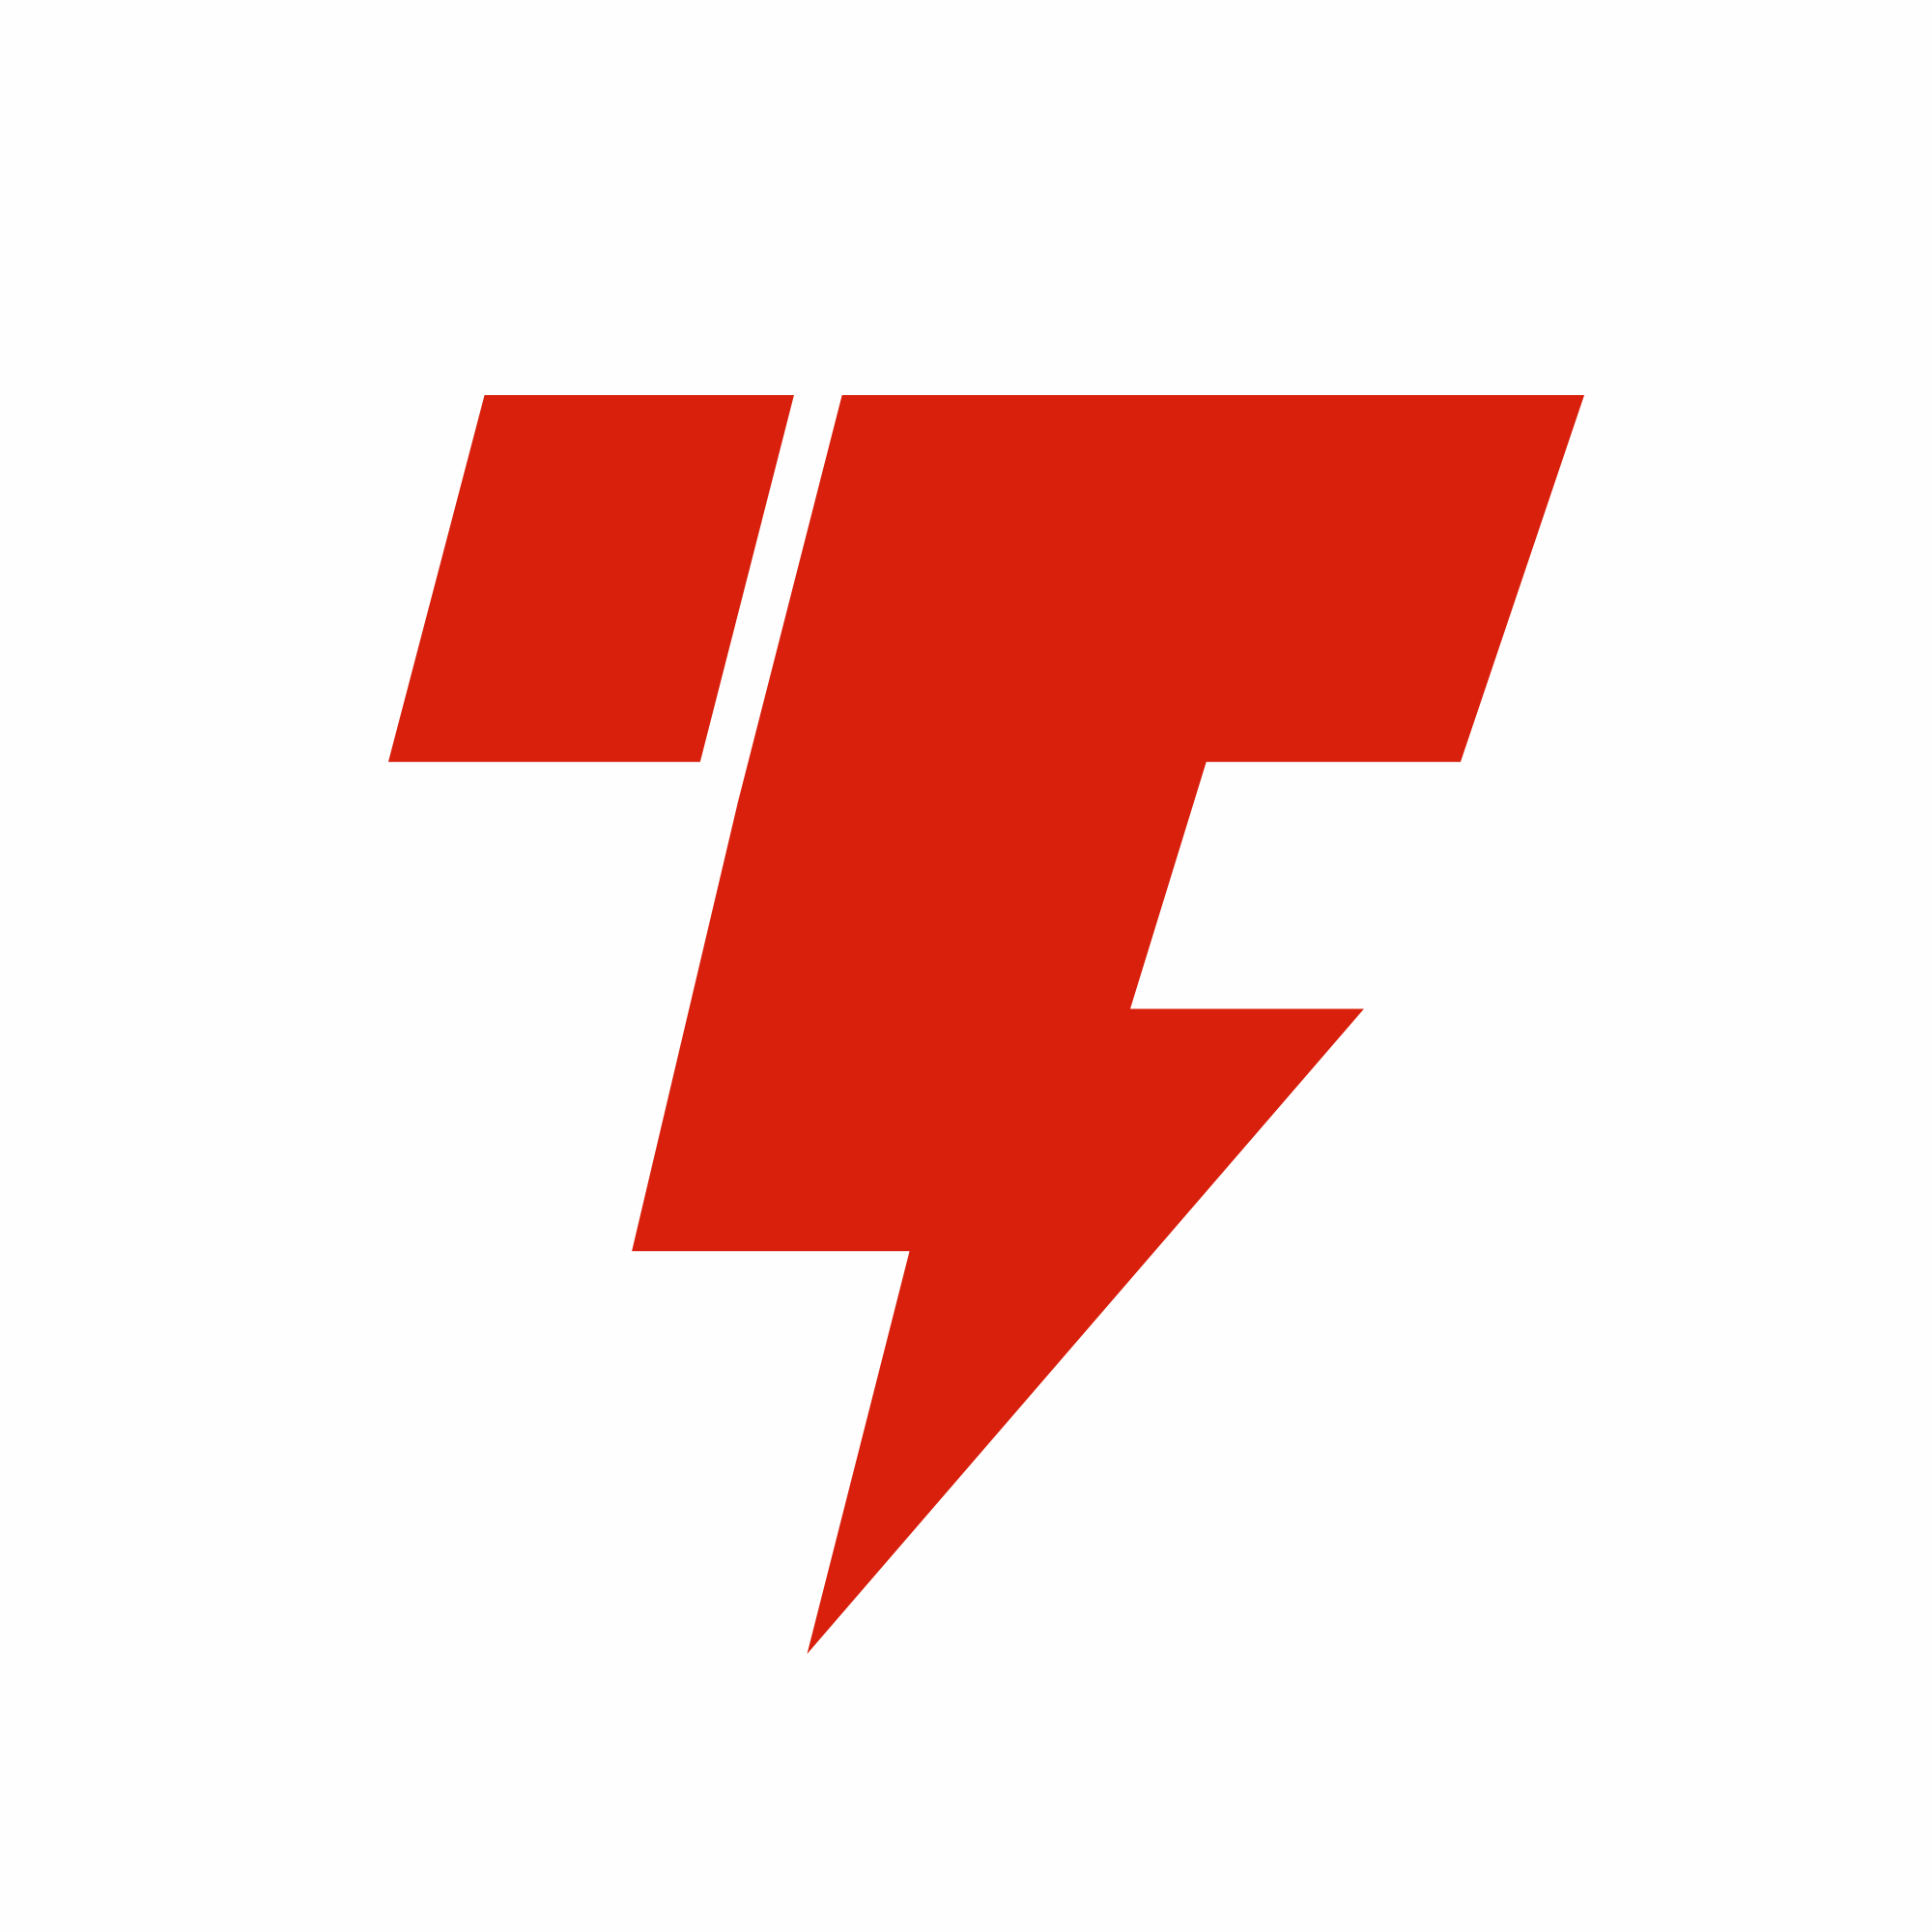 Led Spot Gu10 110v 3w Gu10 Led Bulb Warm White Daylight Led Spotlight Torchstar